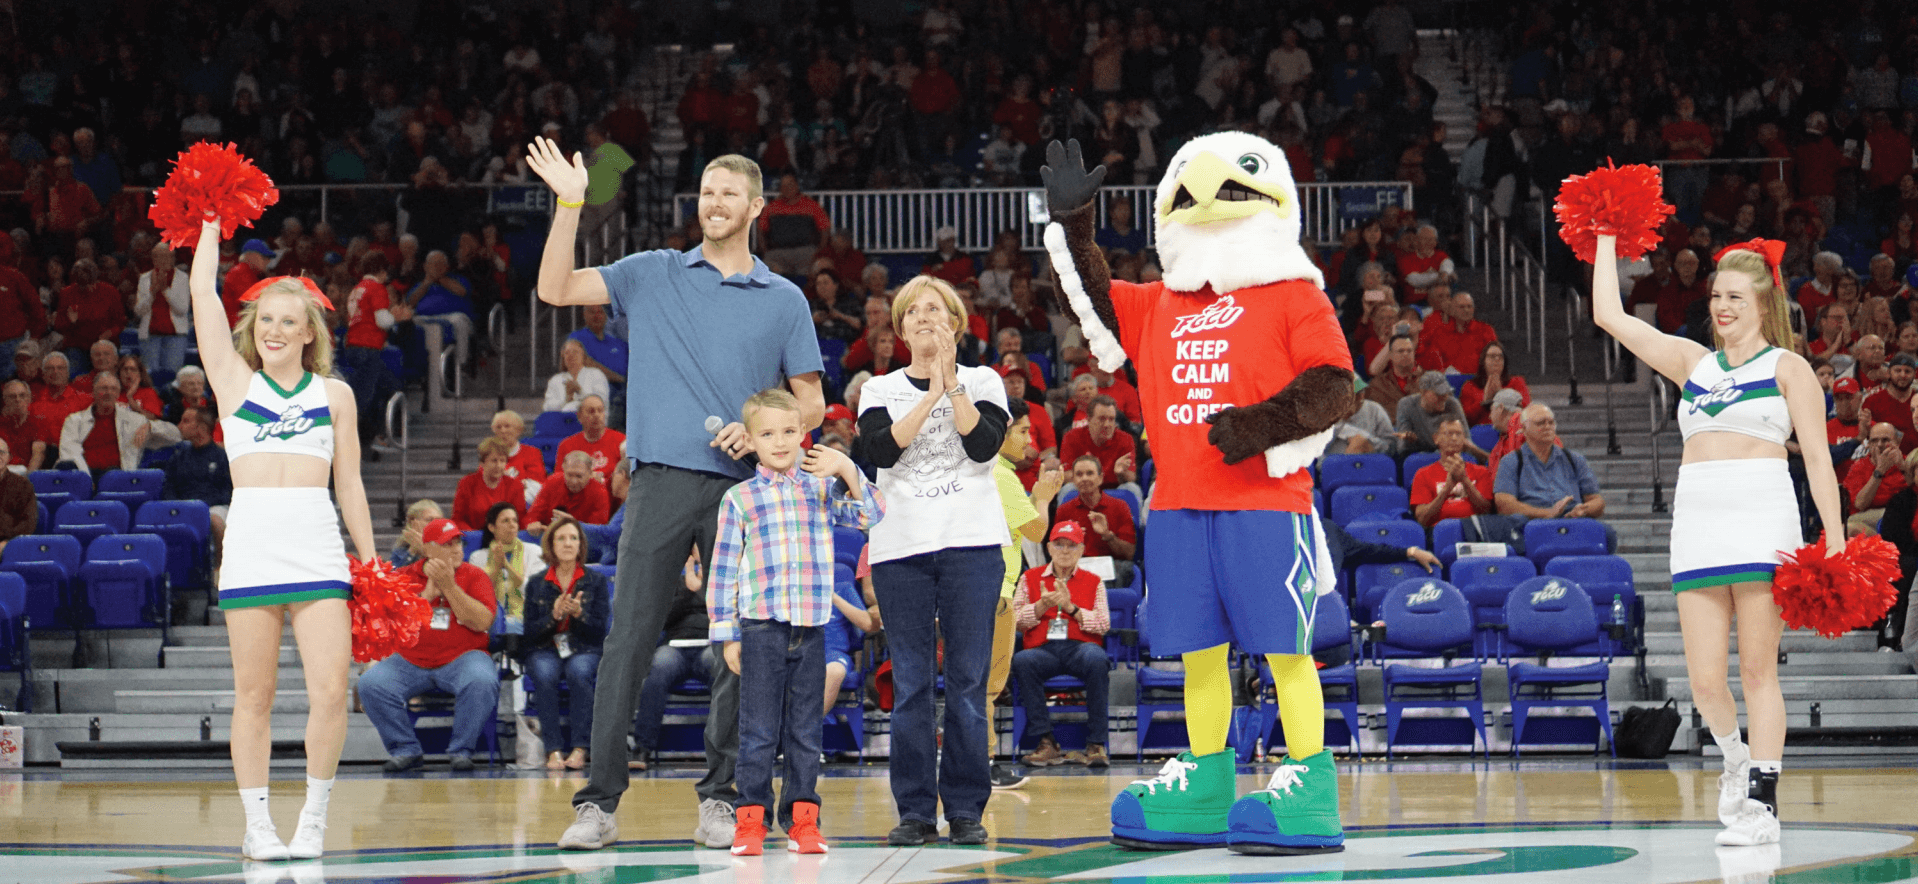 Laces of Love returns to FGCU